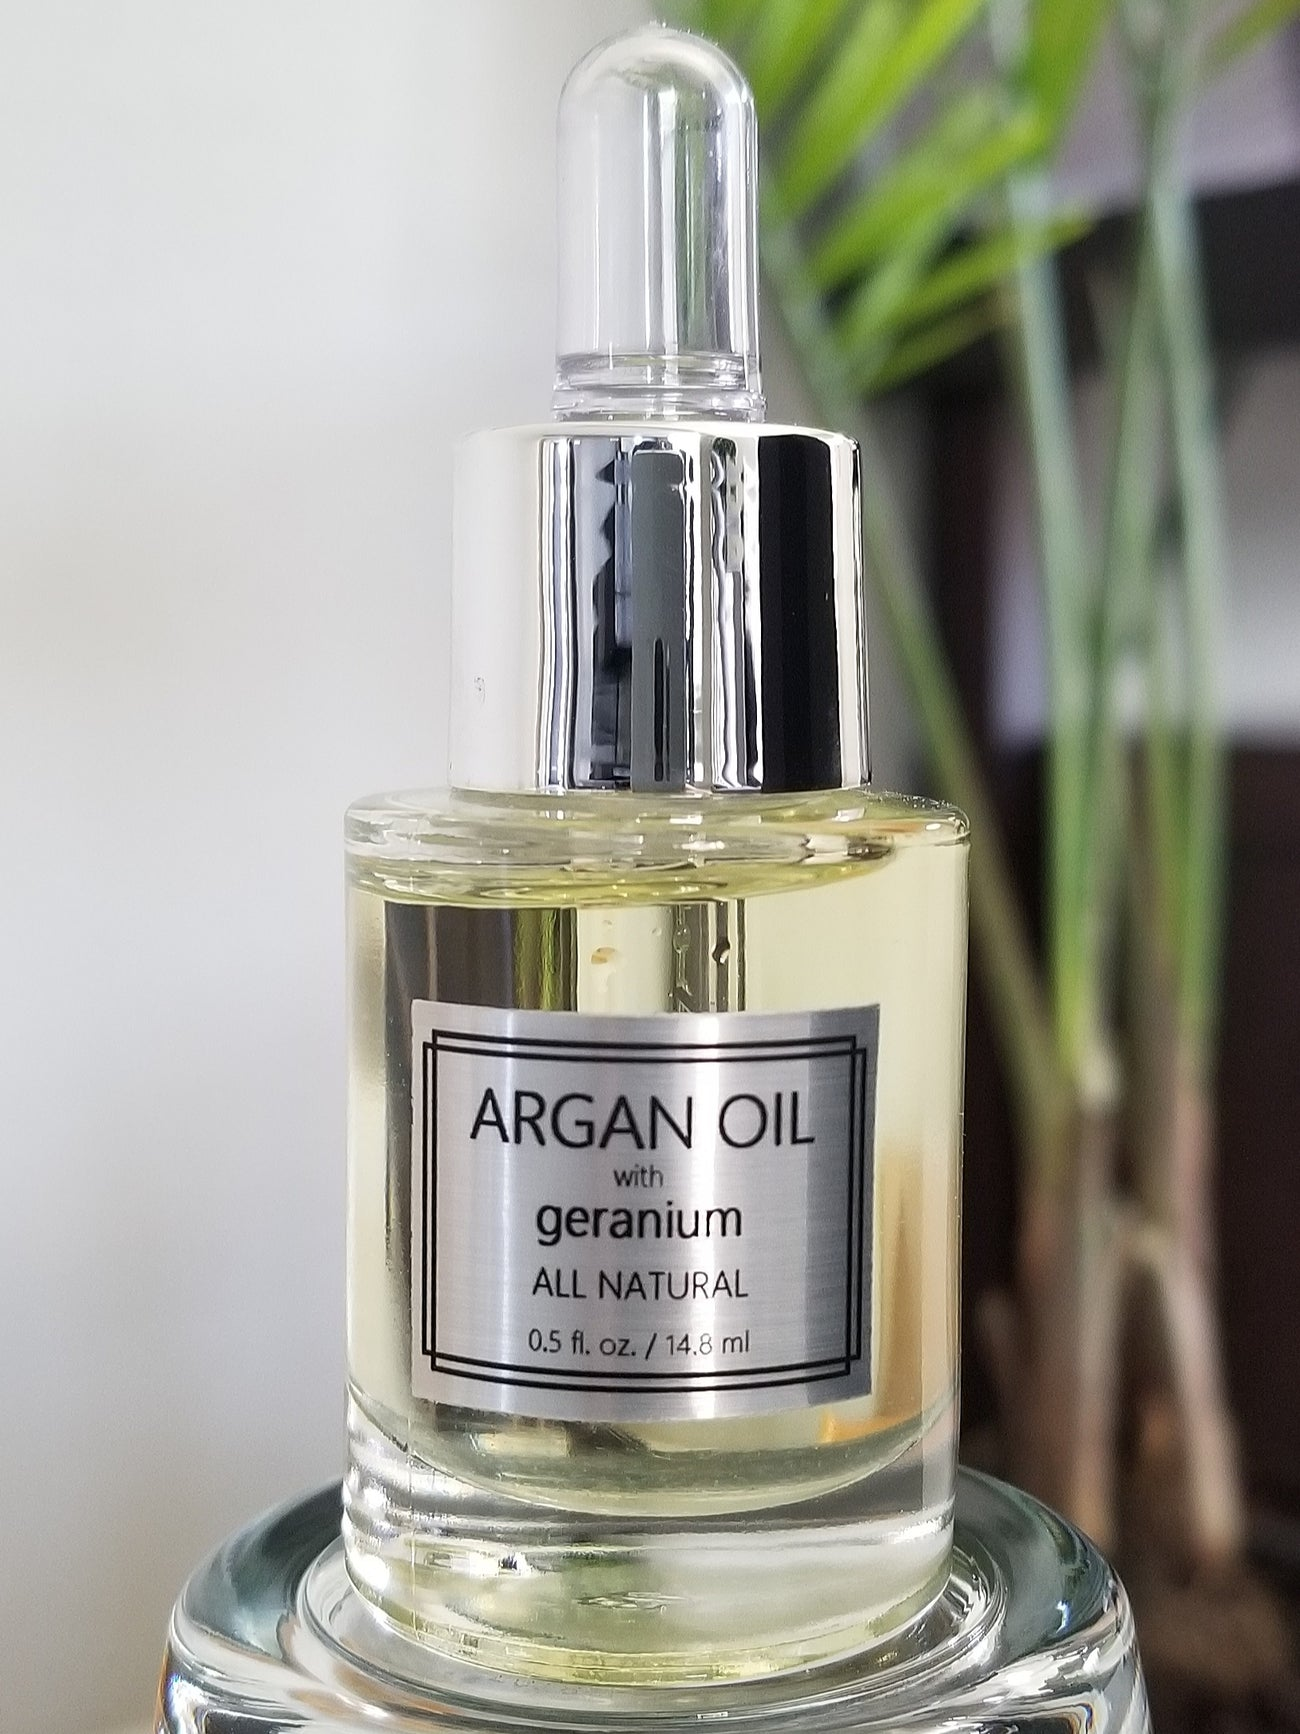 Argan Oil with Geranium